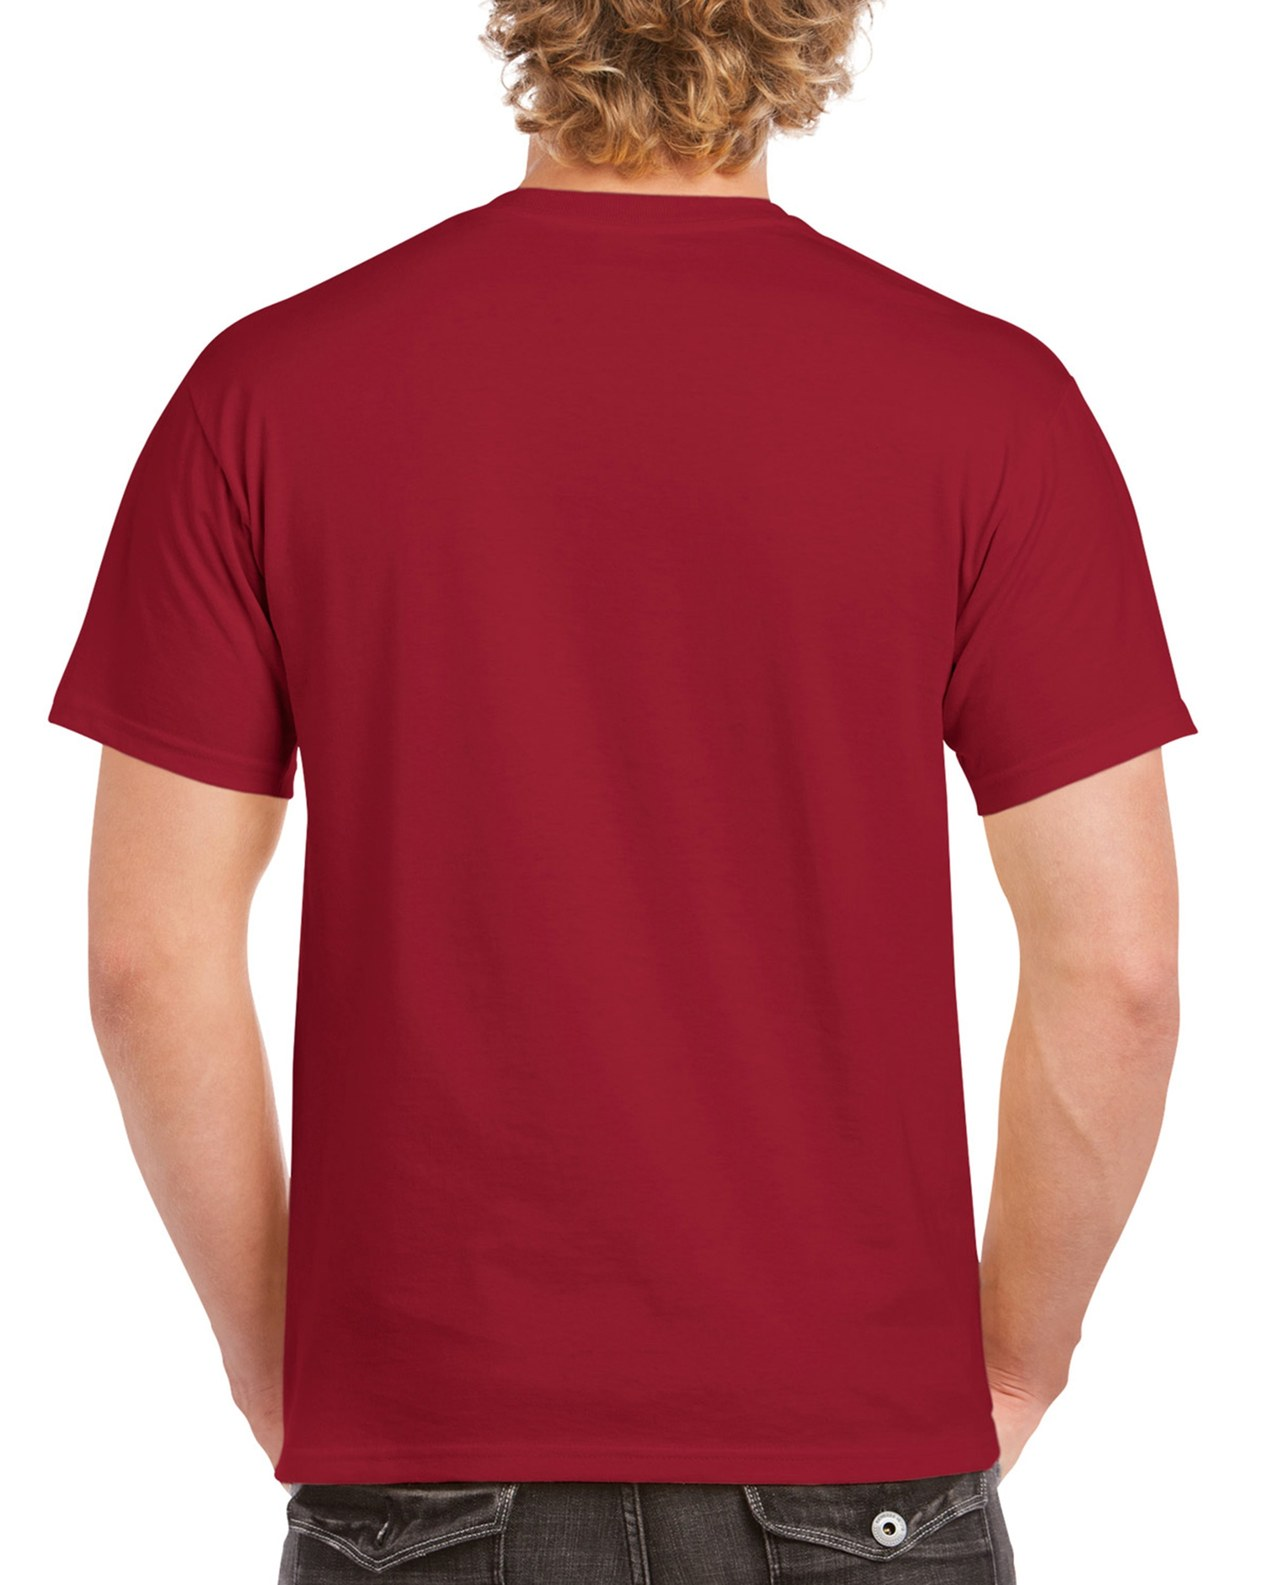 544bec187d7e 5000. Gildan® Heavy Cotton™. Adult T-Shirt. Compare. Add to Favorites. Fit